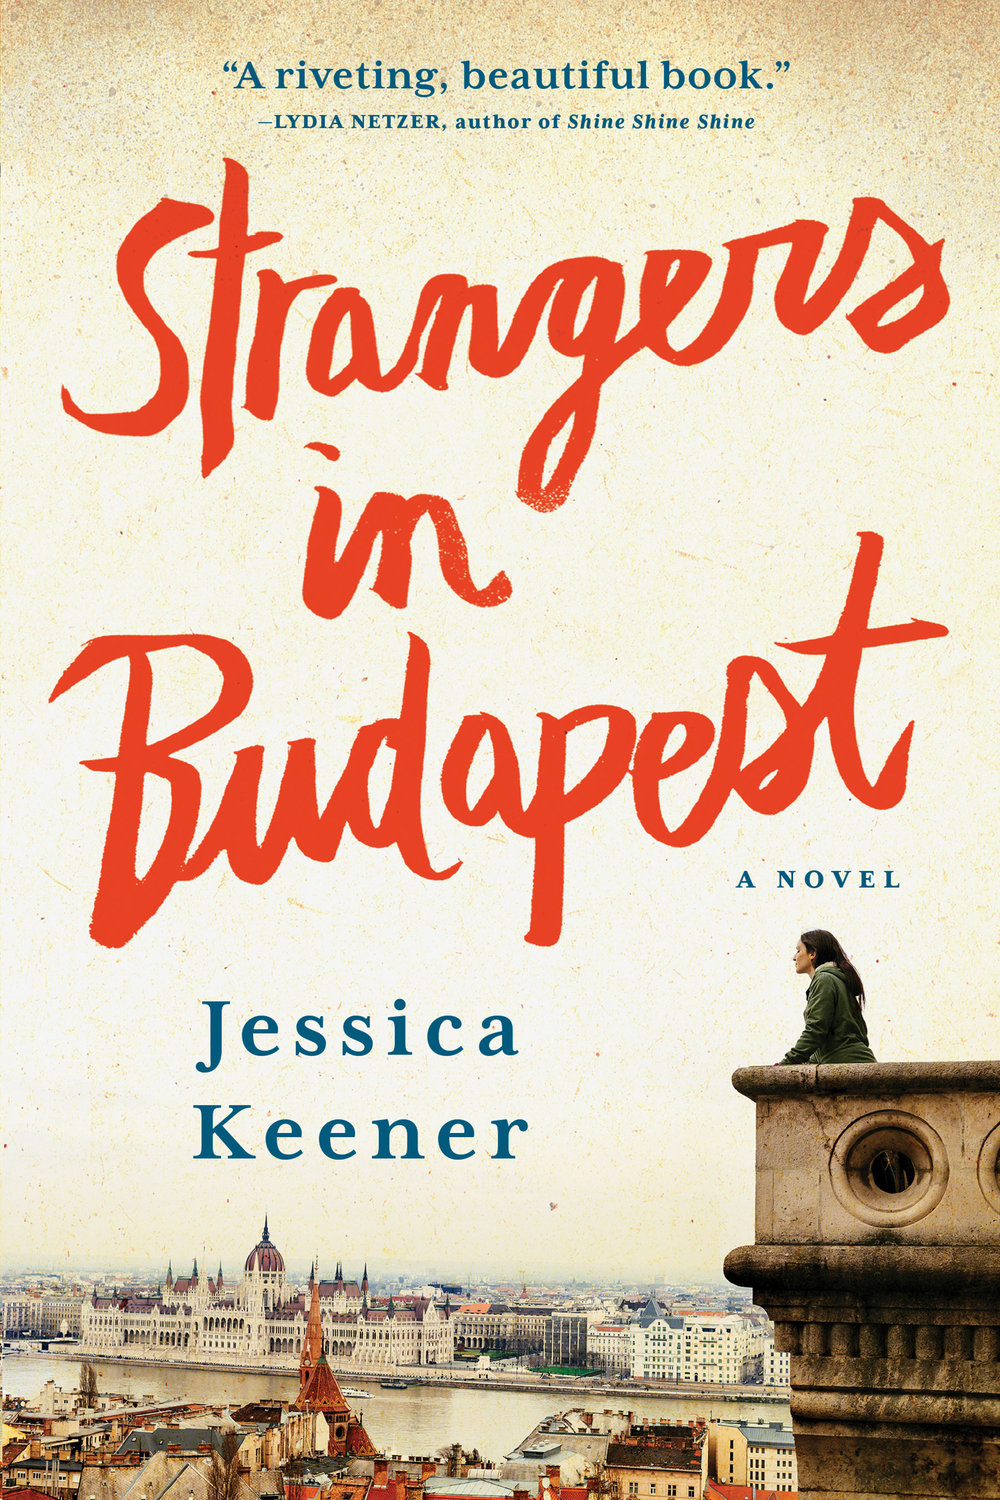 Author Interview with Jessica Keener